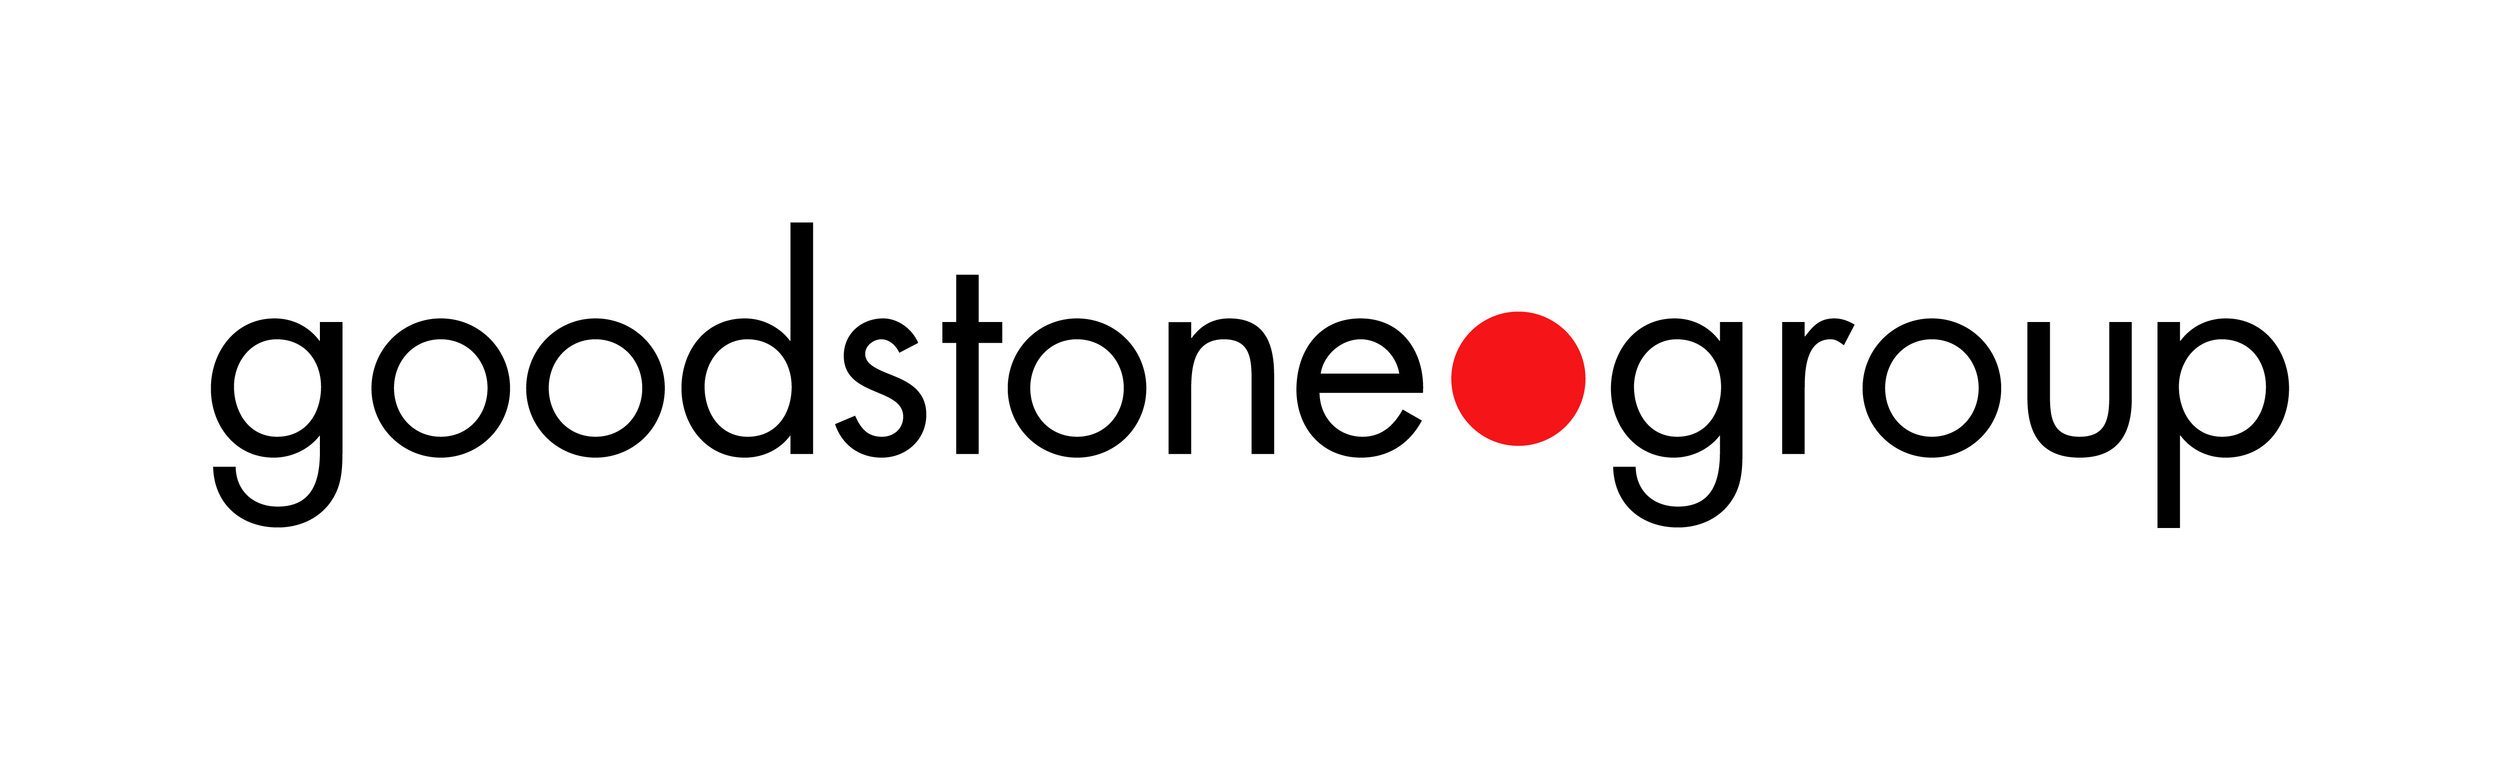 2018 logo goodstone group white background.jpg